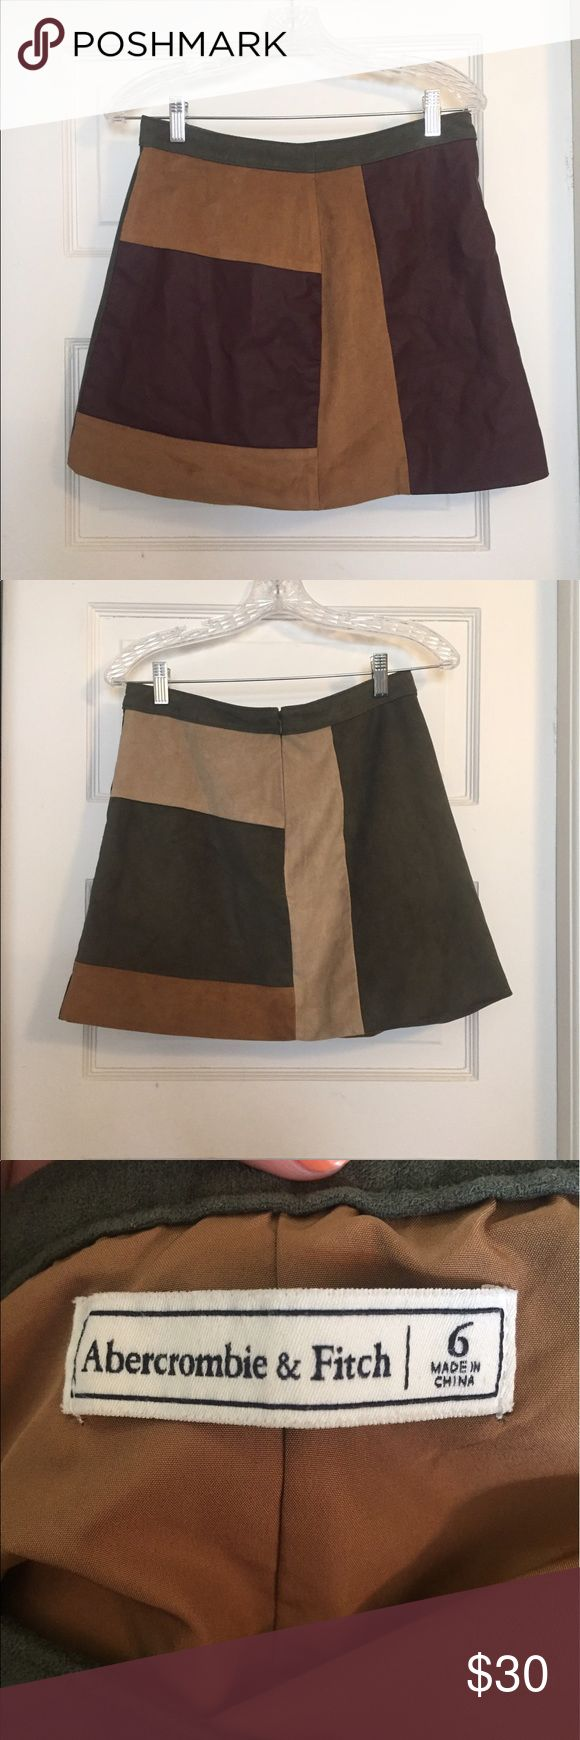 Abercrombie and Fitch skirt Patchwork work, worn only once and washed once. In excellent condition, no rips or stains. The first picture is the front and the second is the back. Abercrombie & Fitch Skirts Mini